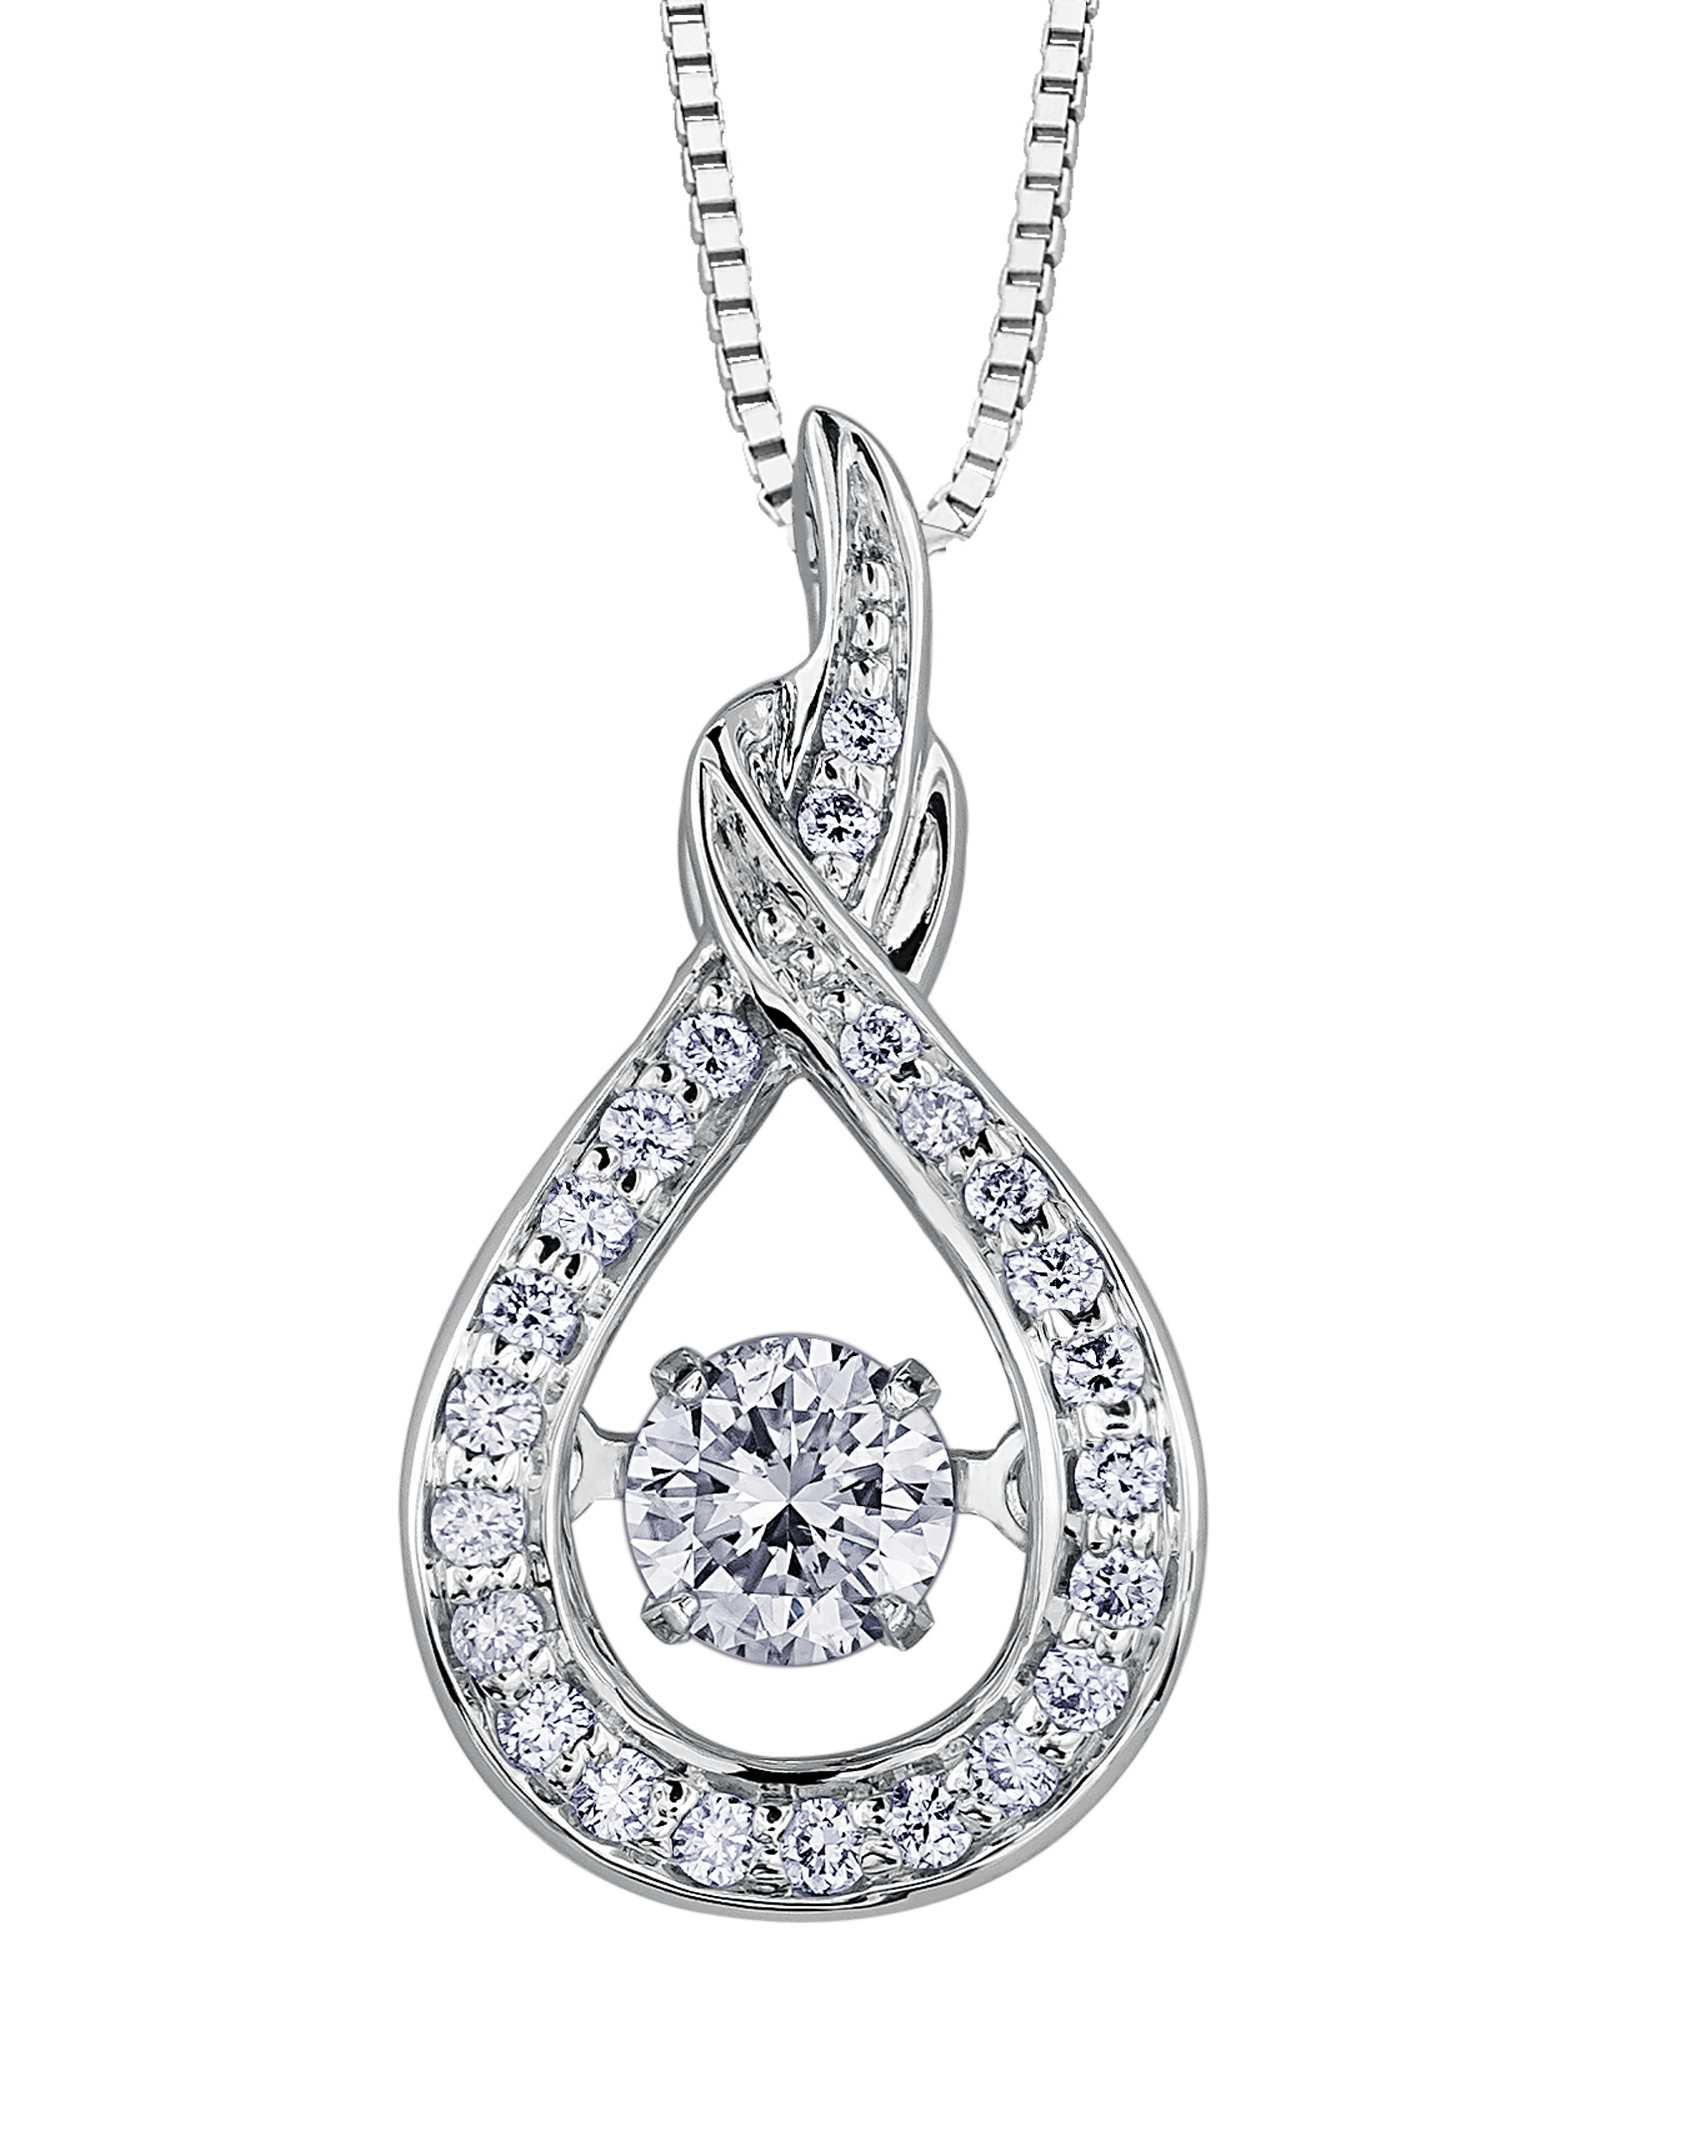 Pendant - 10K white Gold & Canadian diamonds  0.18 Carat T.W.